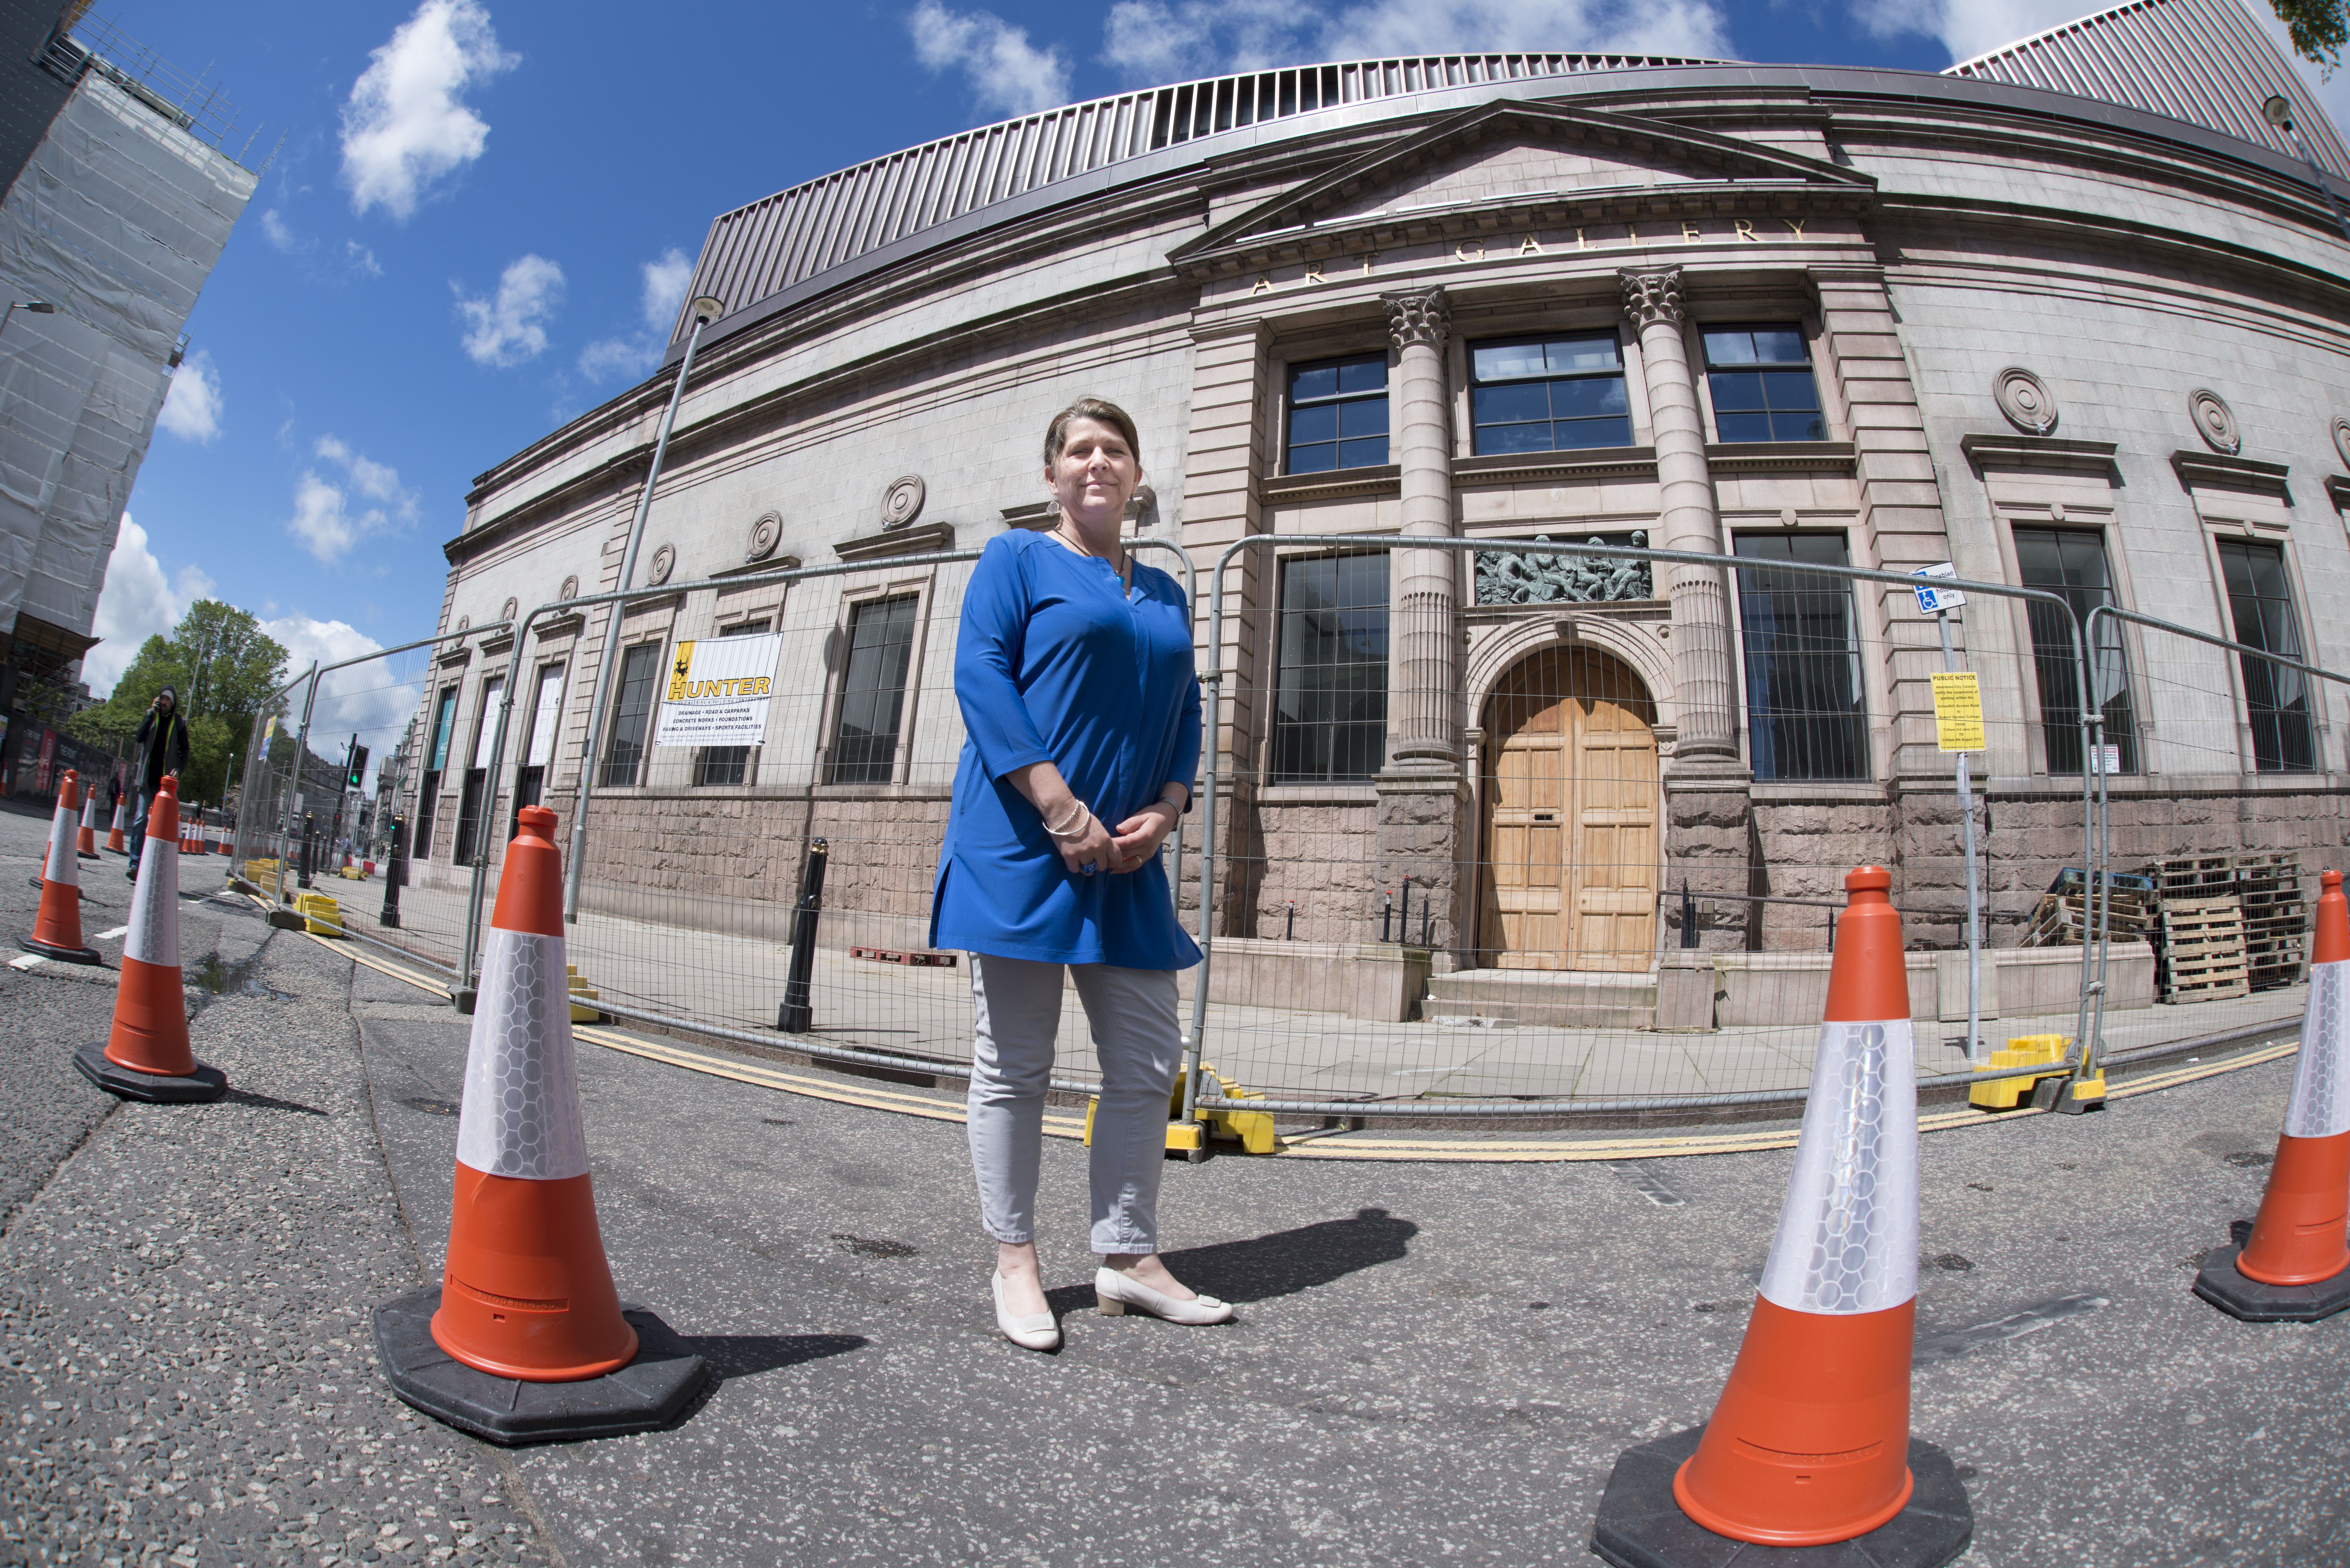 Councillor Marie Boulton, lead for the City Centre Masterplan outside Aberdeen art gallery.